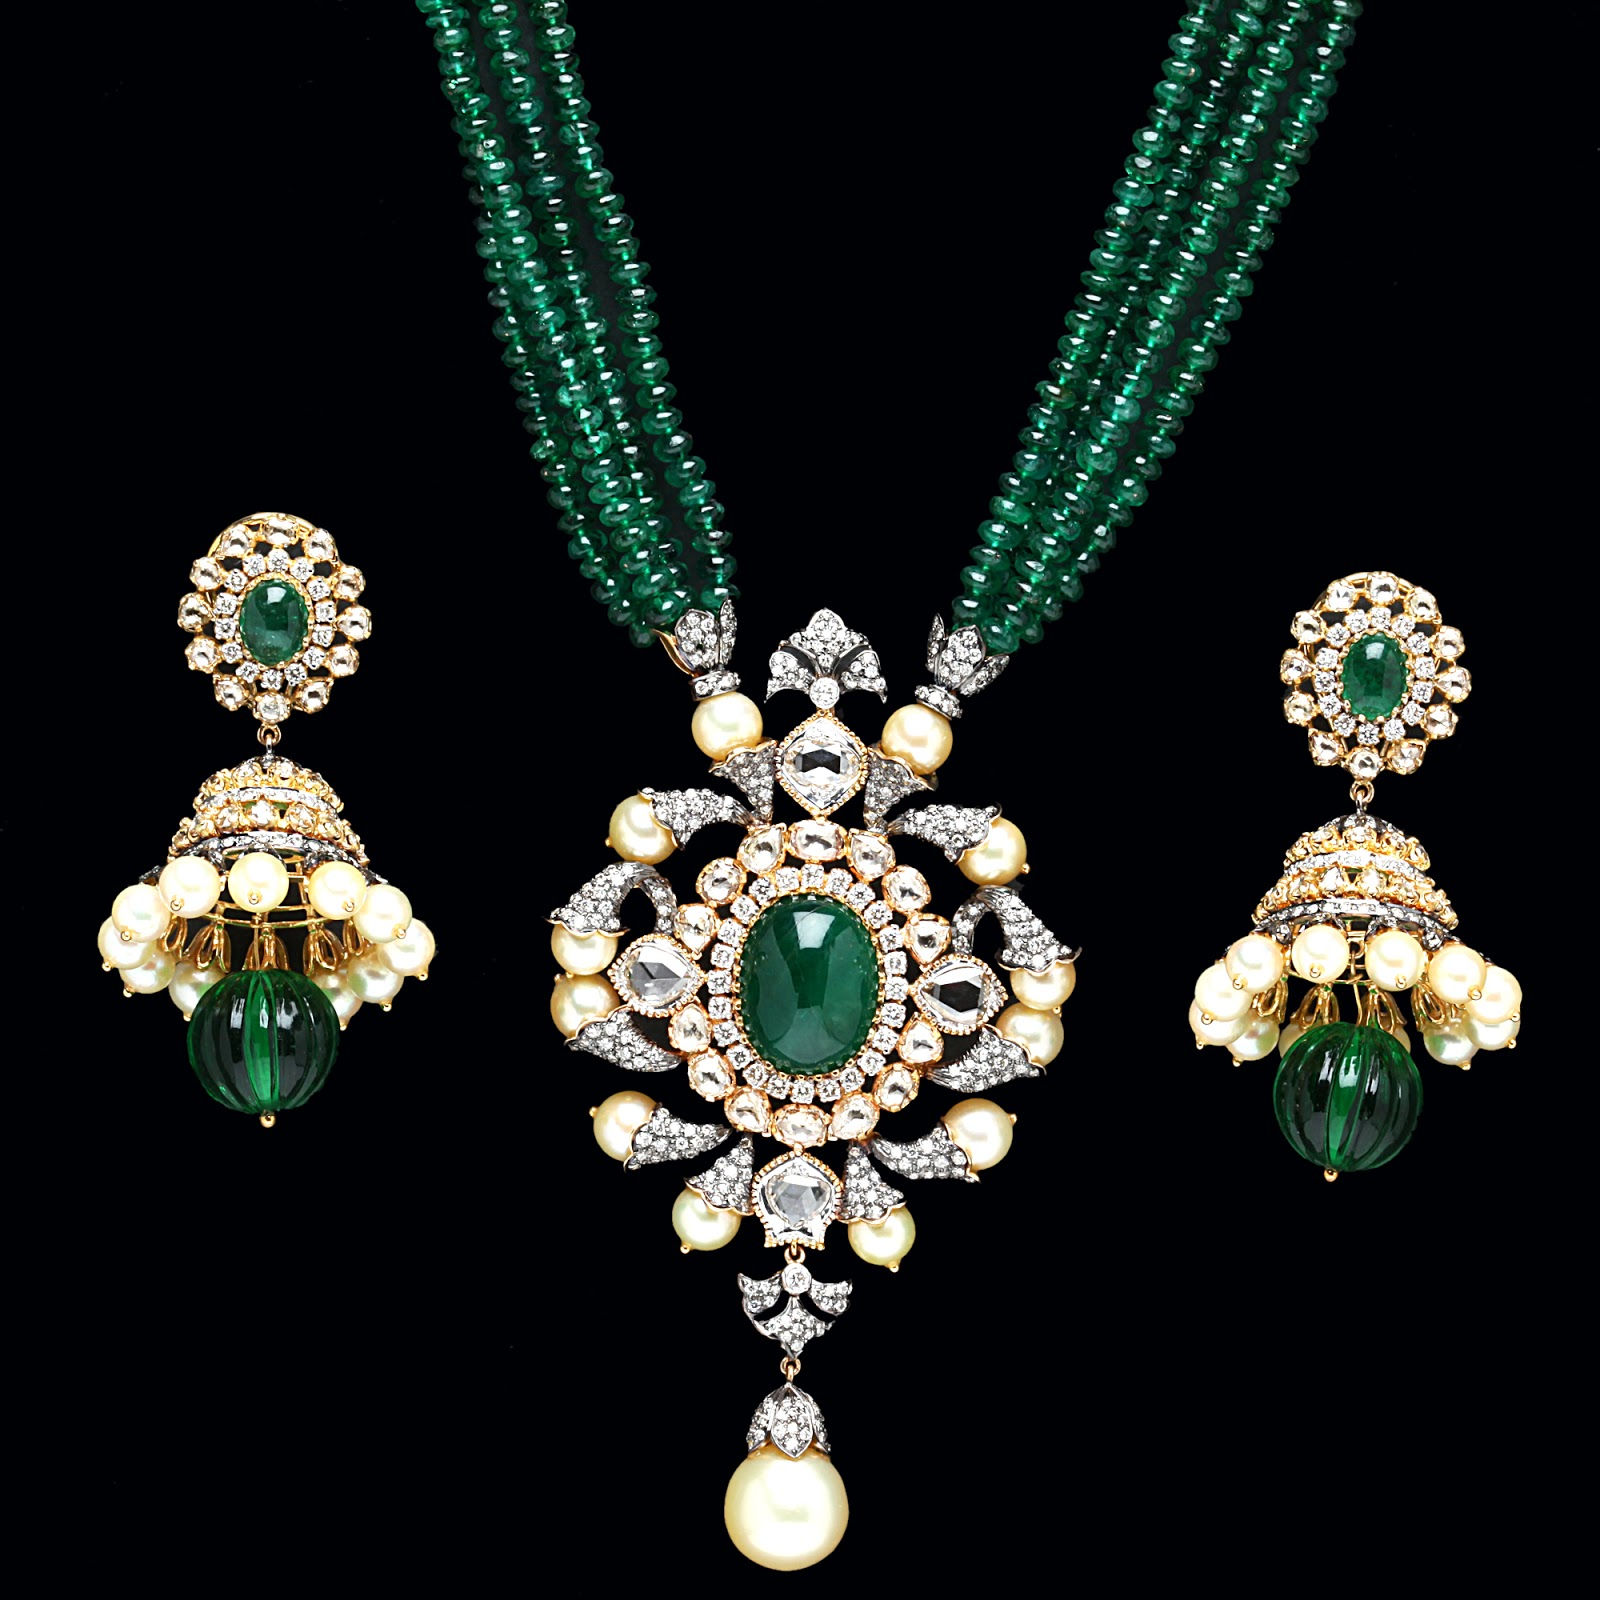 Pearl Jewellery Necklace >> Indian Jewellery and Clothing: Emerald Pendant sets from PC Jewellers..